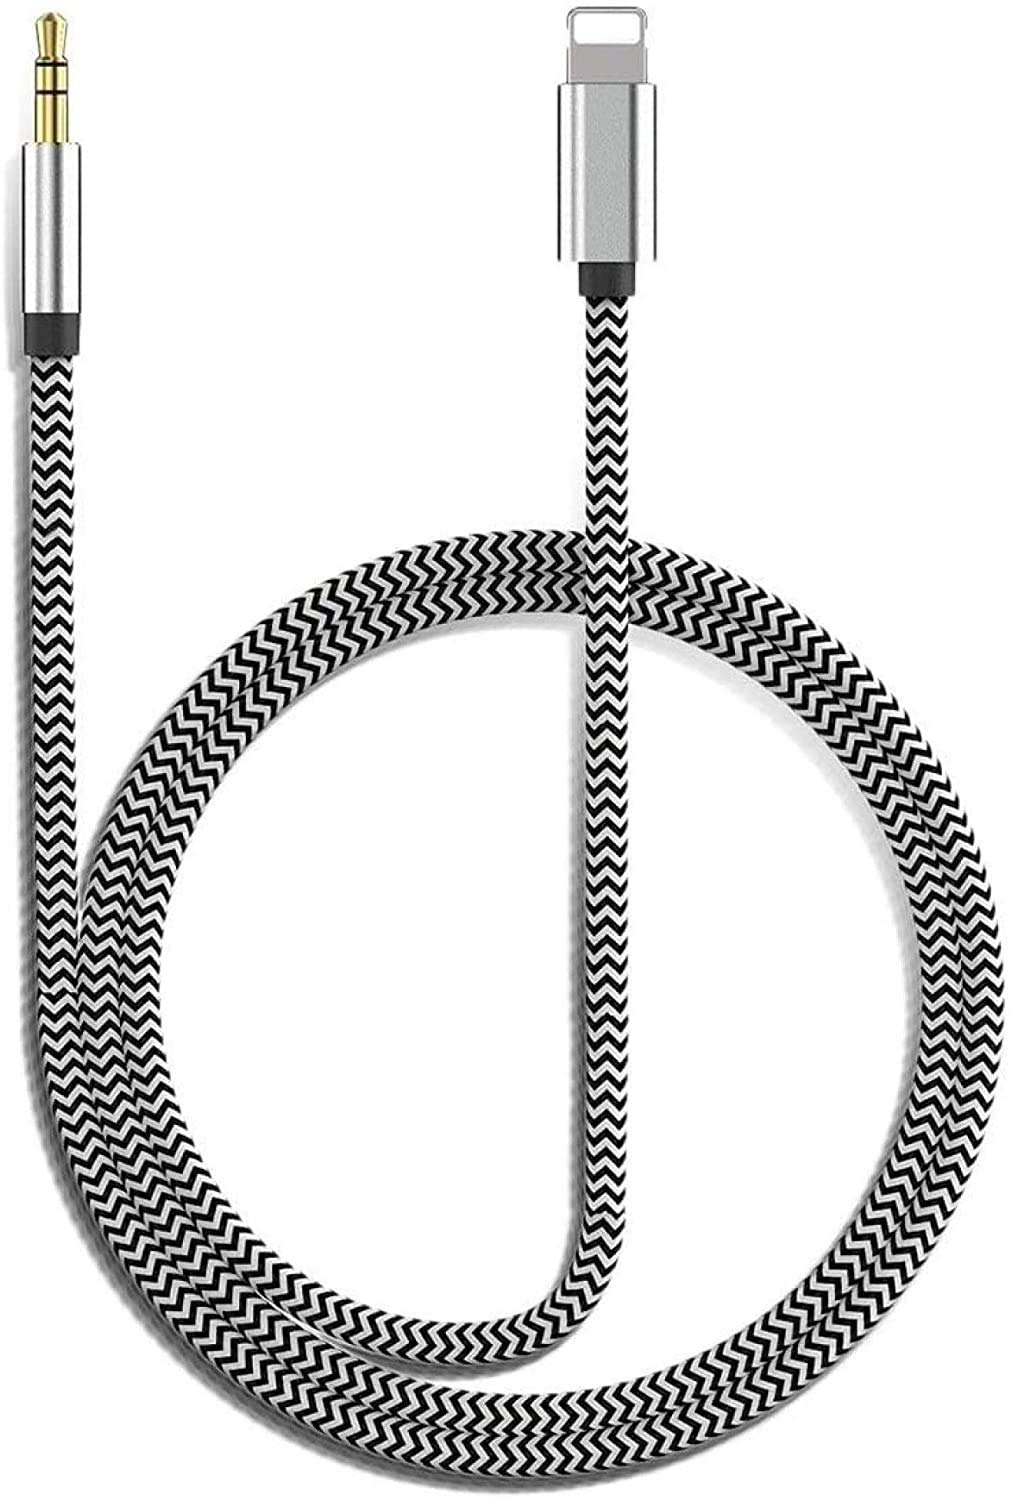 [Apple MFi Certified] Lightning to 3.5mm AUX Audio Nylon Braided Cable, iPhone AUX Cord for Car Stereo for iPhone 11/11 Pro/XS/XR/X 8 7 6/iPad/iPod to Car/Home Stereo, Speaker, Headphone (3.3FT/1M)